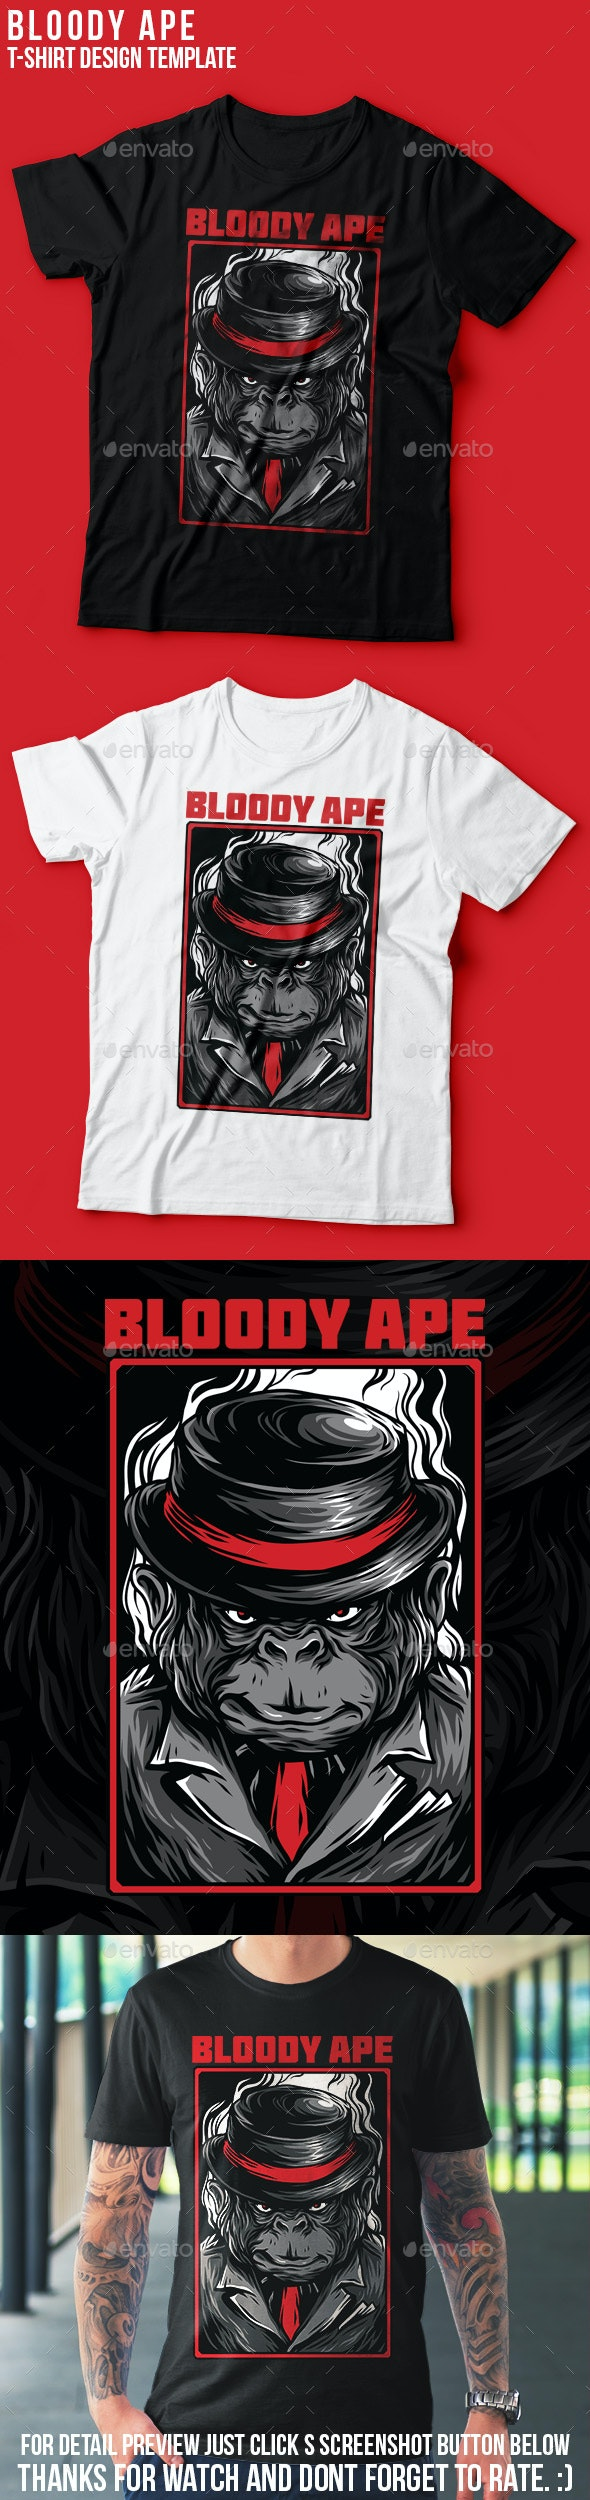 Bloody Ape T-Shirt Design - Academic T-Shirts